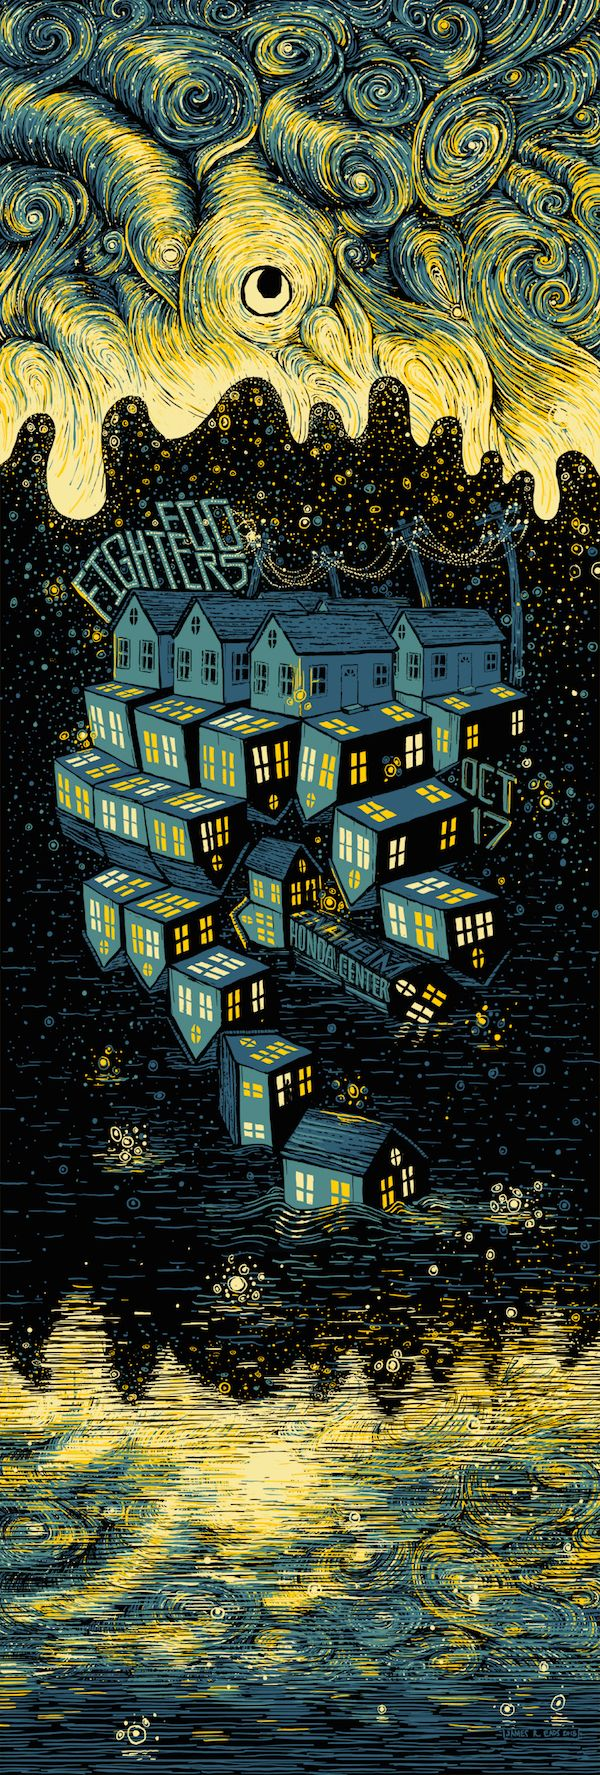 Foo Fighters Poster (and Art Print) by James Eads (Onsale Info)